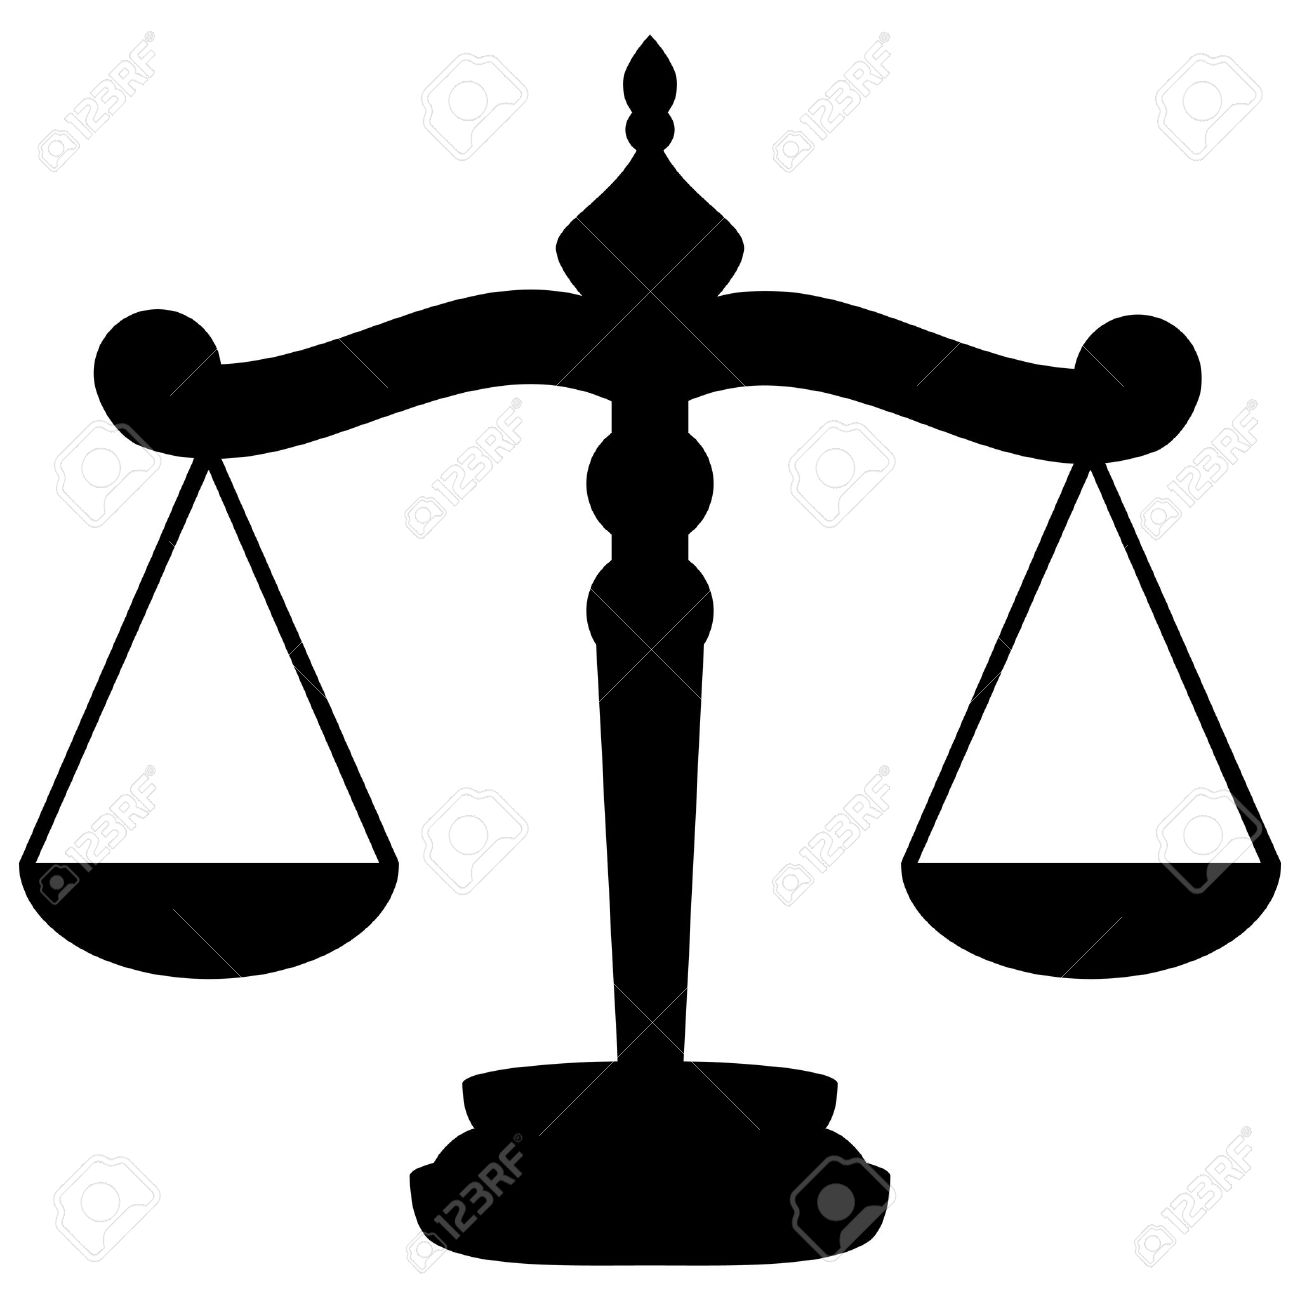 Balance Justice scales of justice royalty free cliparts, vectors, and stock